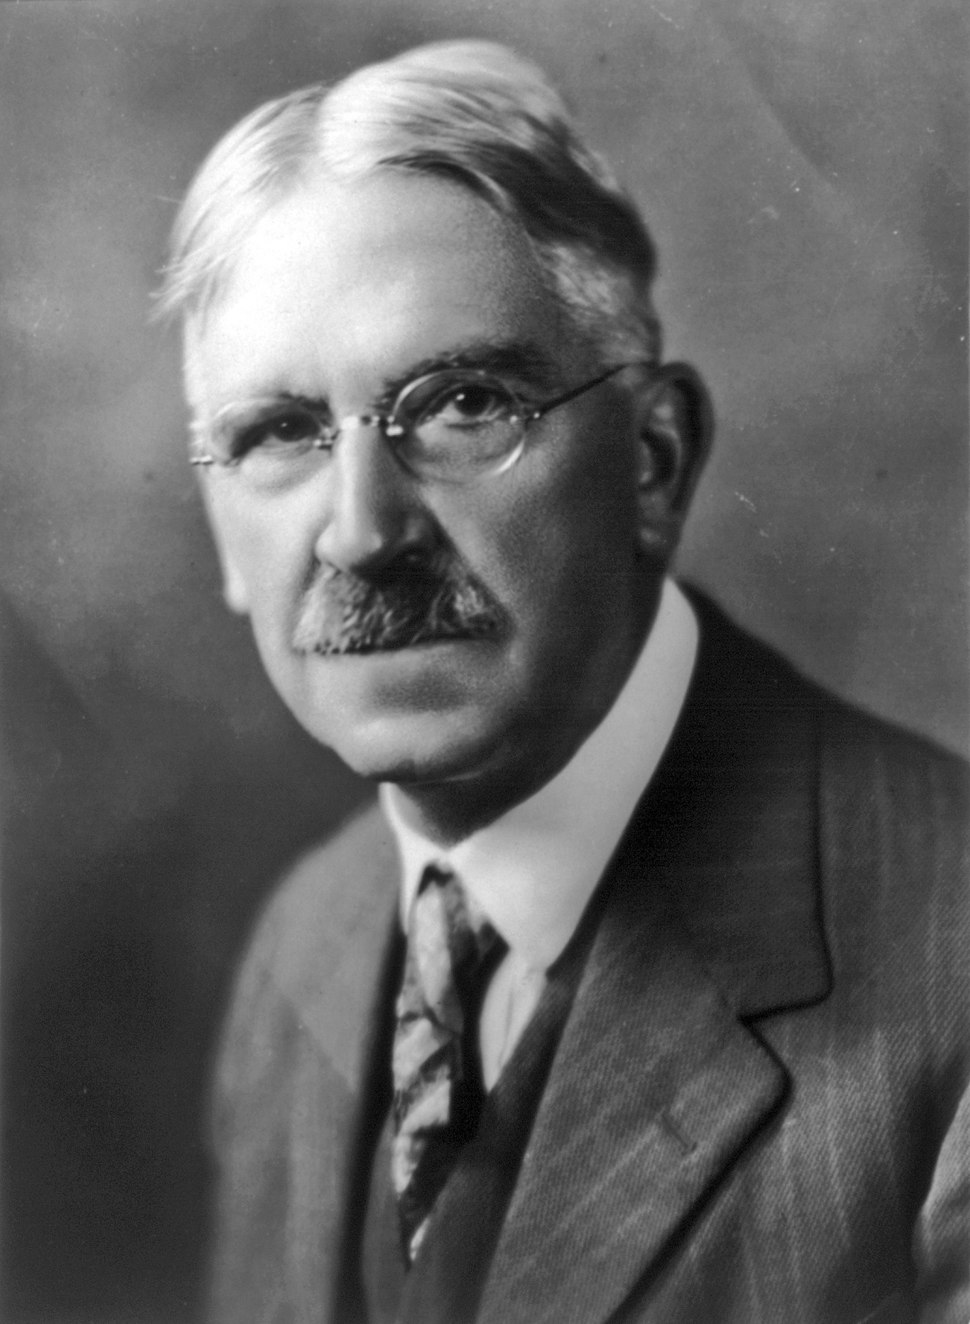 Bust portrait of John Dewey, facing slightly left.